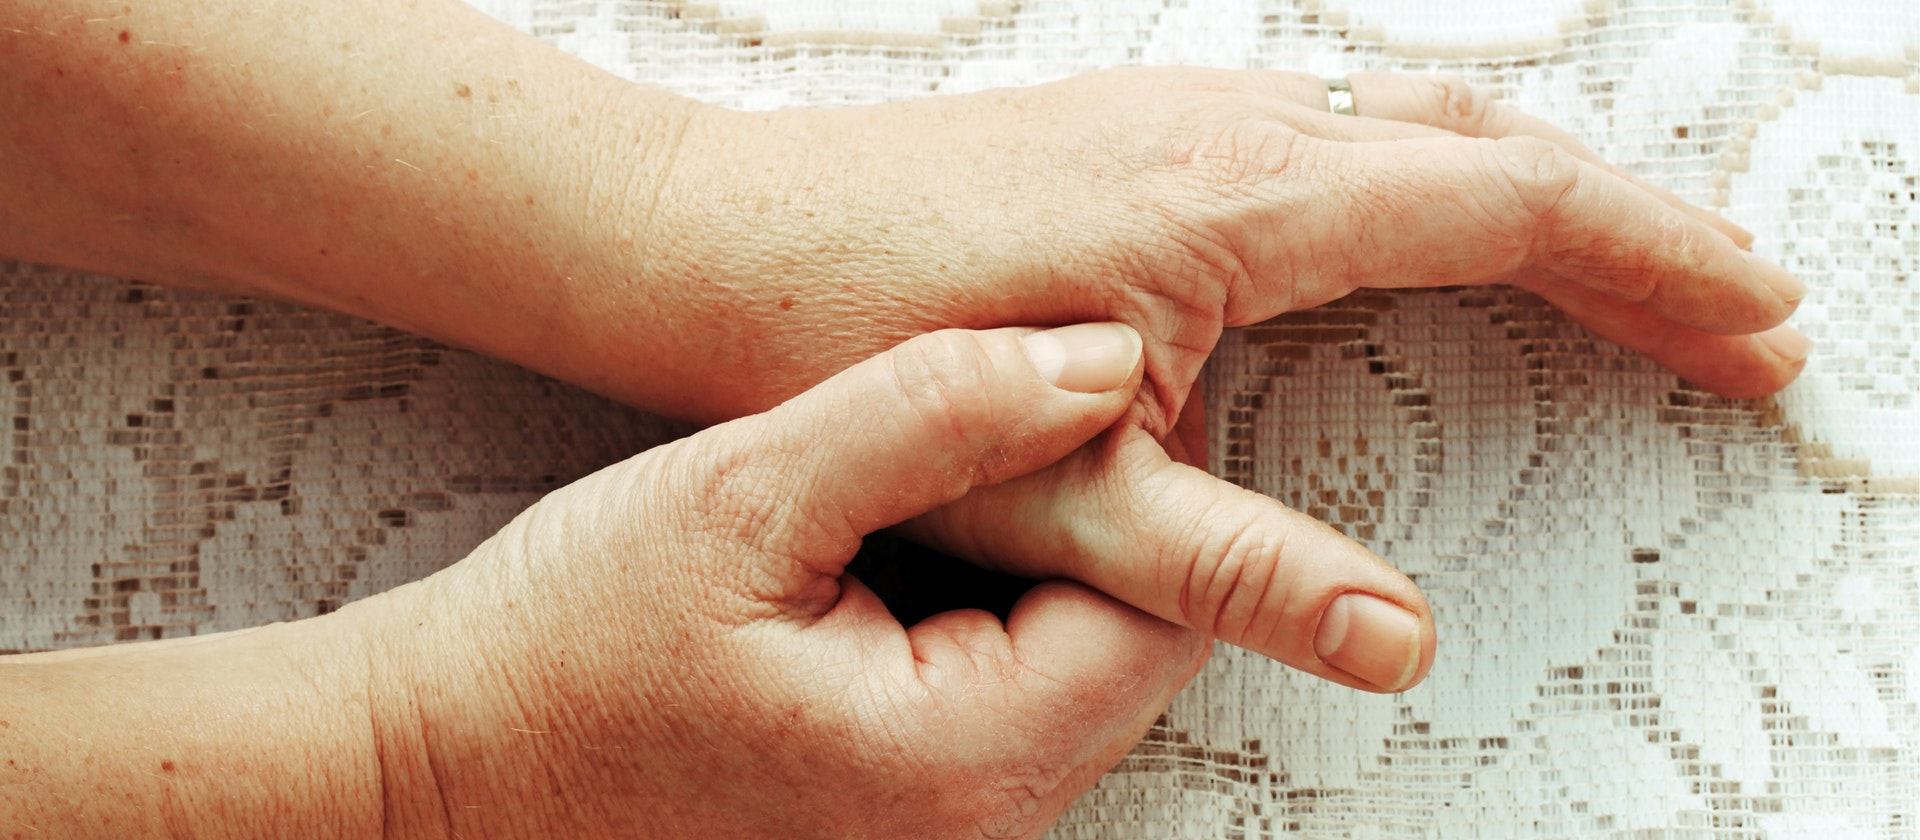 Arthritis, Infections & Broken Thumbs: Top Thumb Pain Causes | Buoy